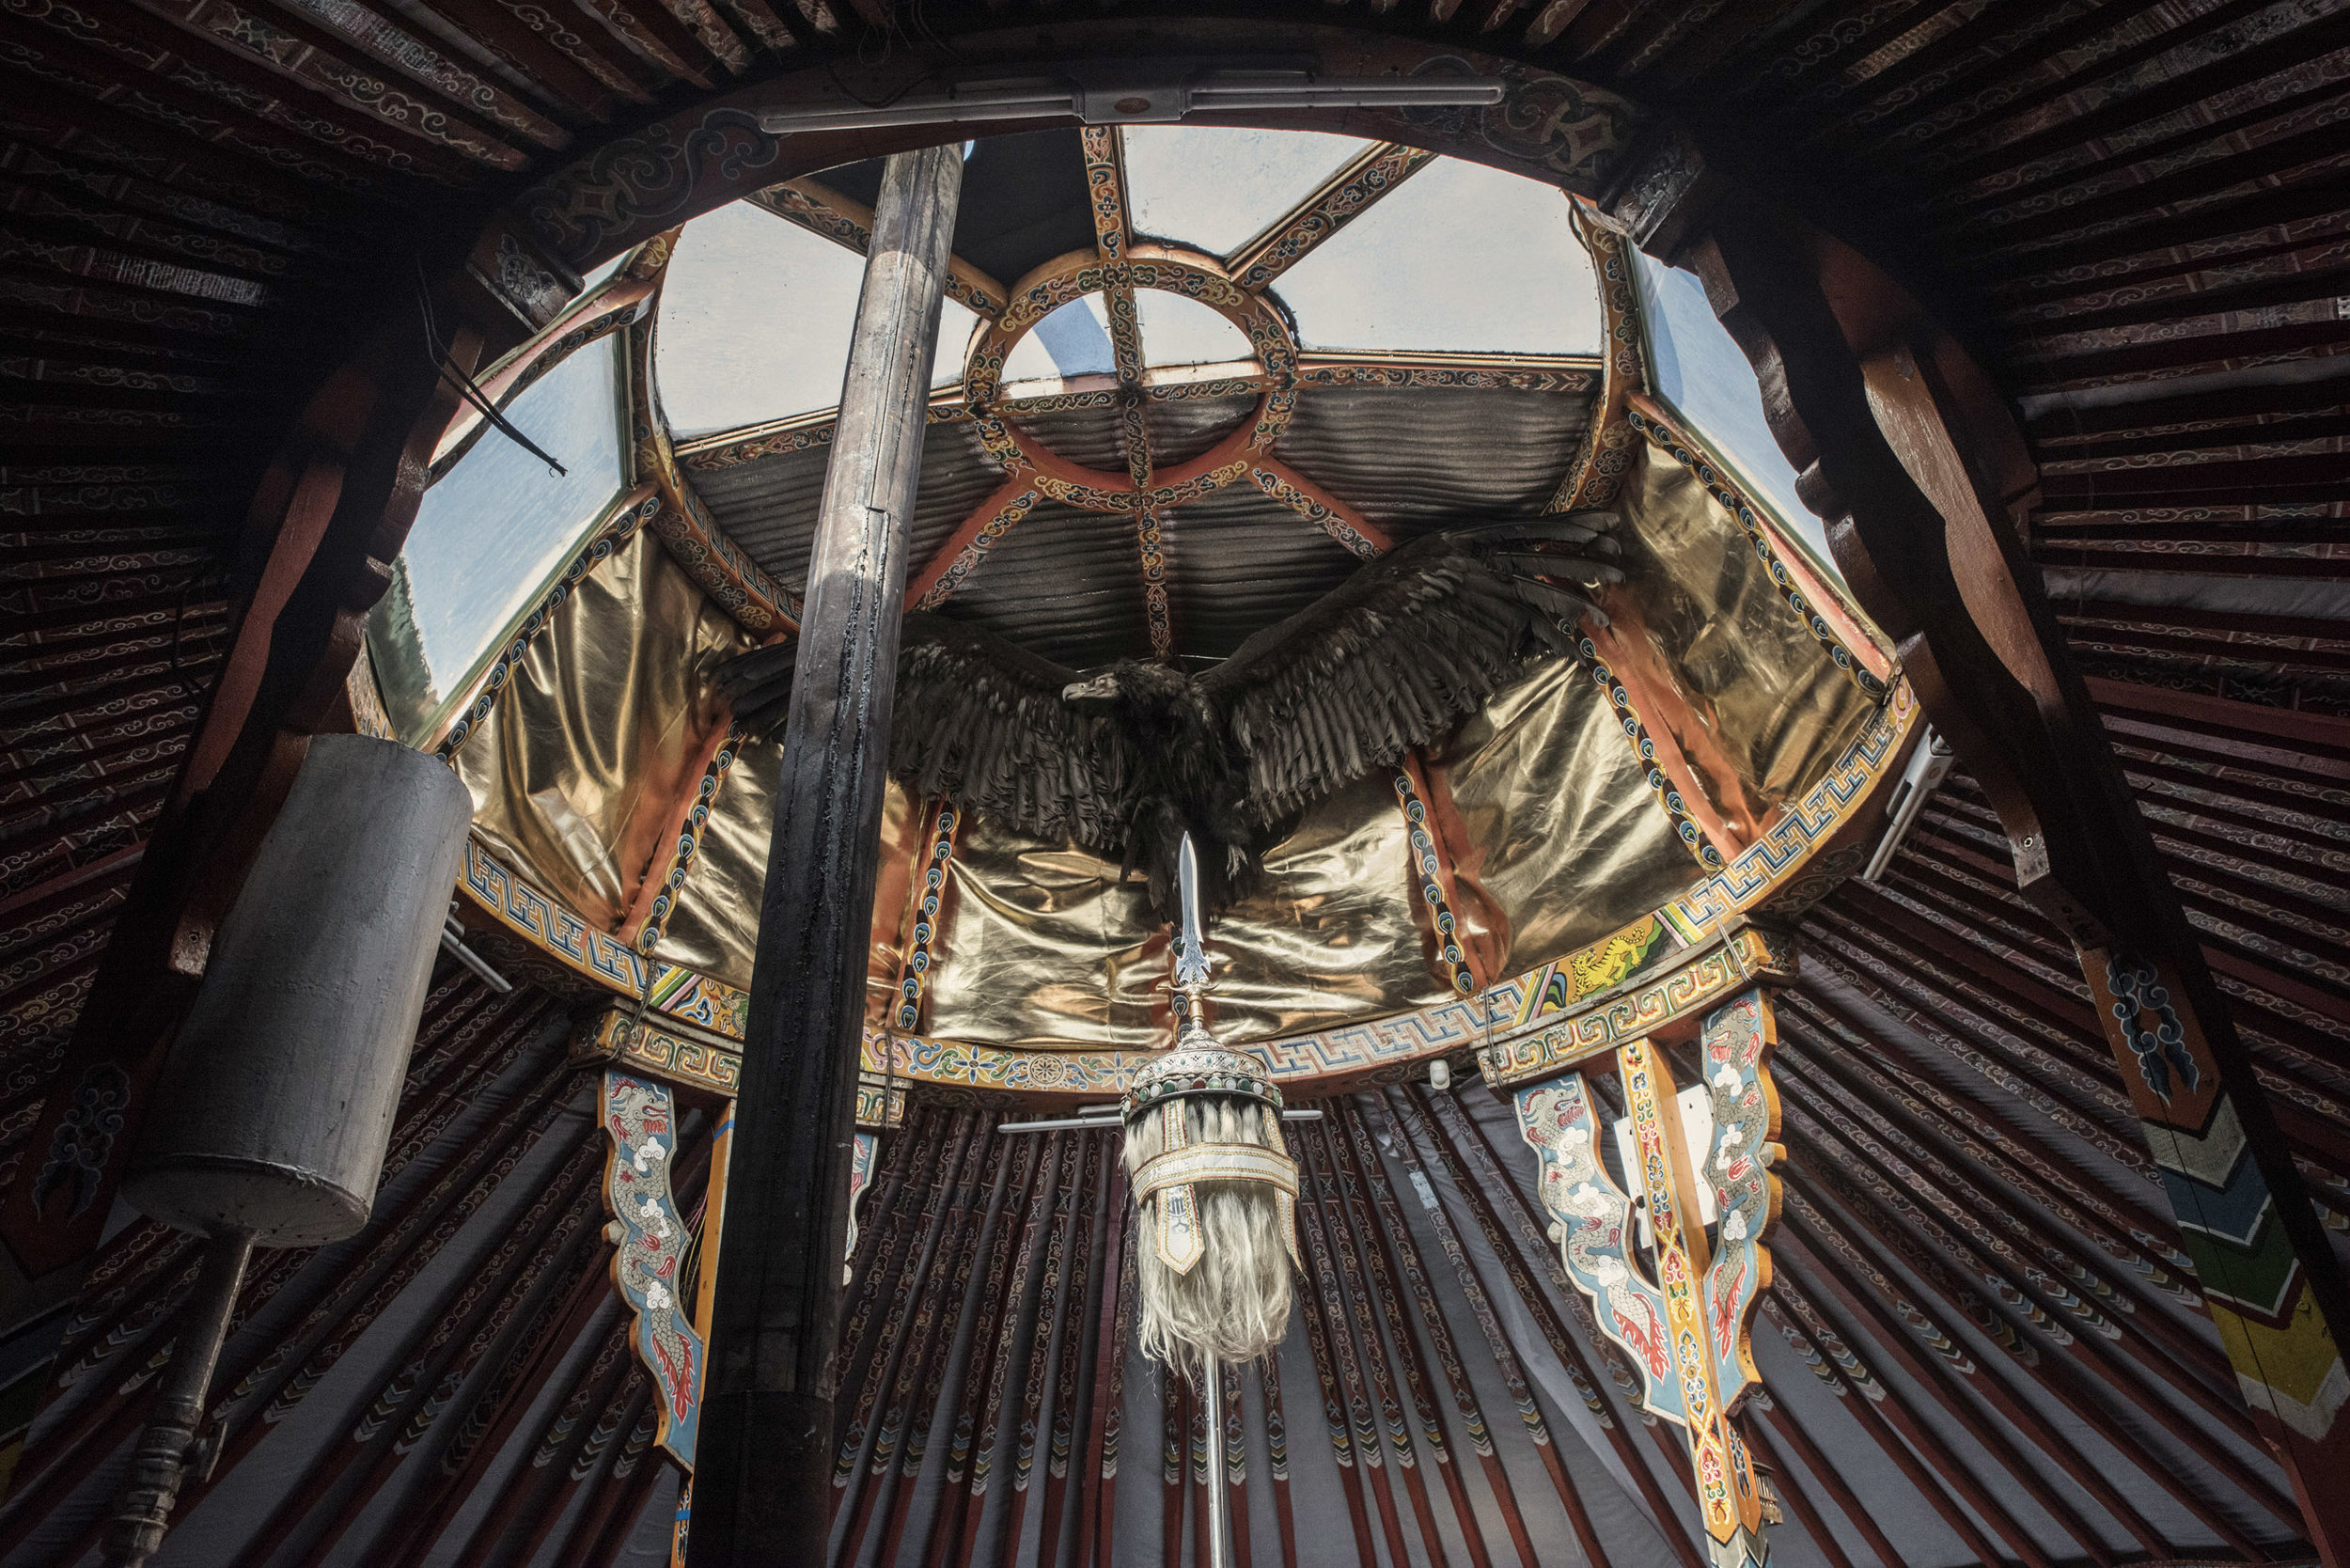 A stuffed eagle placed atop the ger (Mongolian tent) of the Centre for Shamanic Eternal Heavenly Sophistication where a renown shaman used to practice before his accidental death.  Eagles are closely associated with Mongolian shamanic traditions and the shaman themselves.